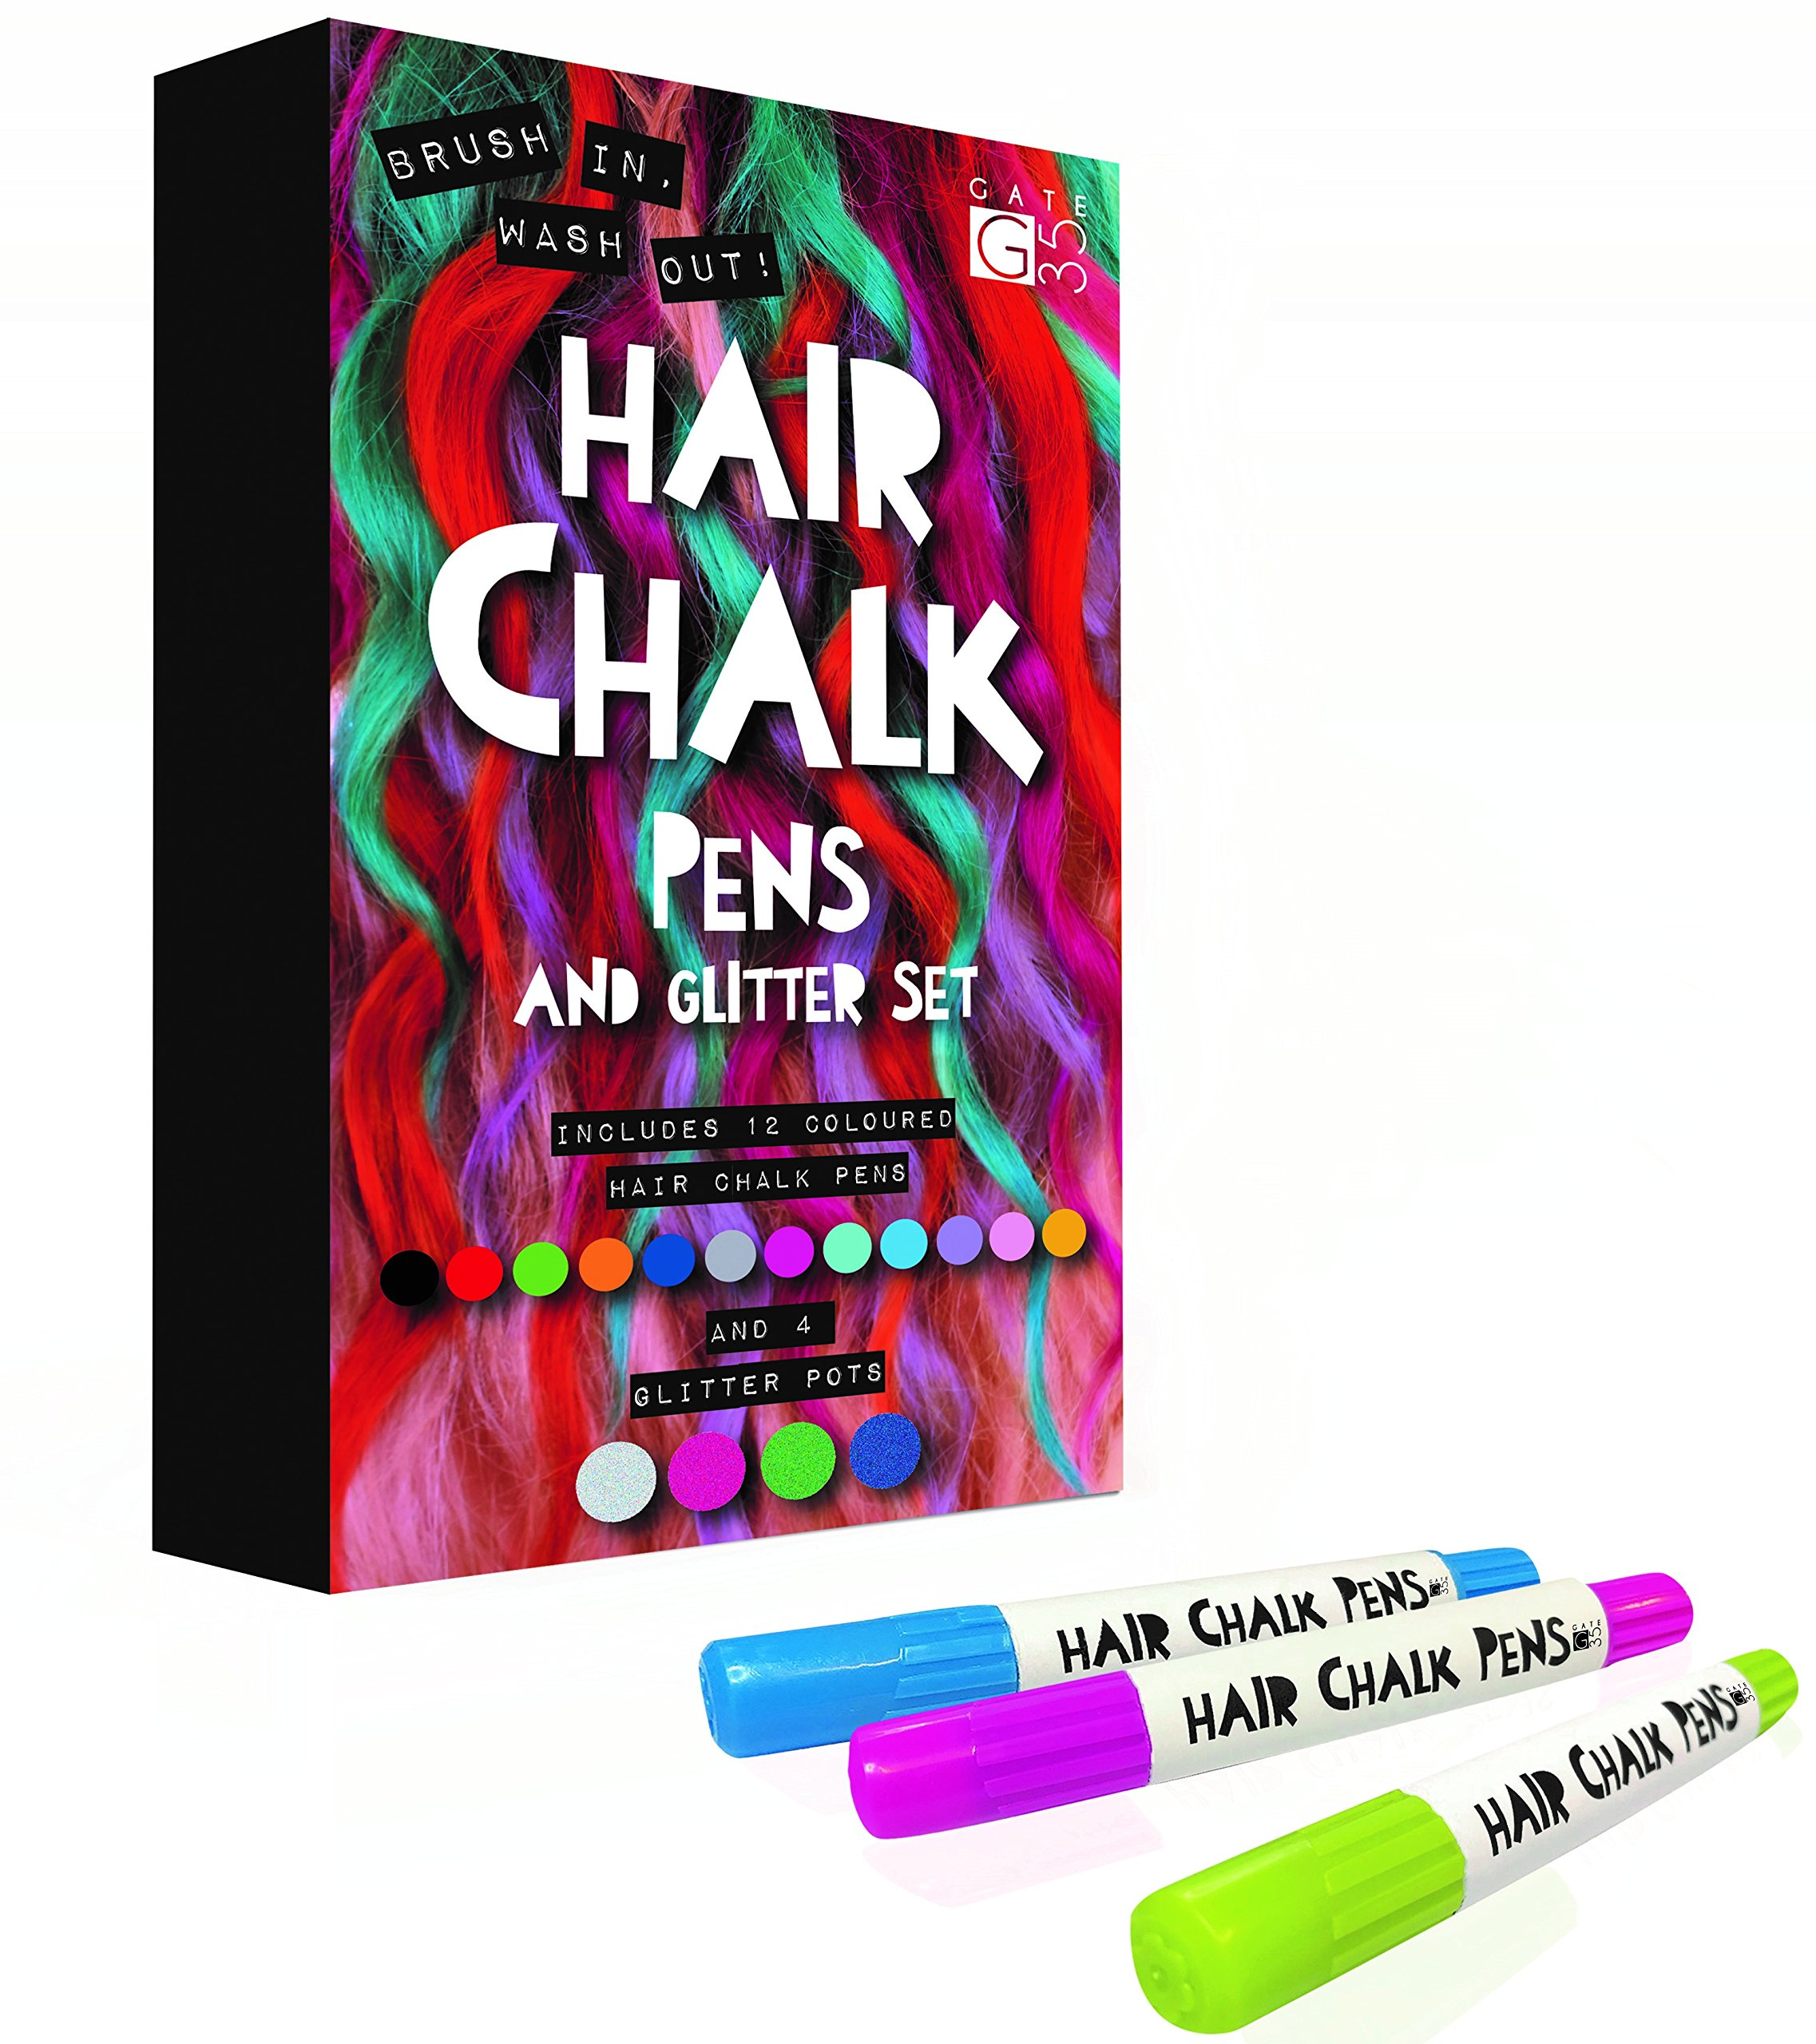 Hair Chalk Pens and Glitters - 12 Chalks and 4 Glitters - Deluxe Set 10